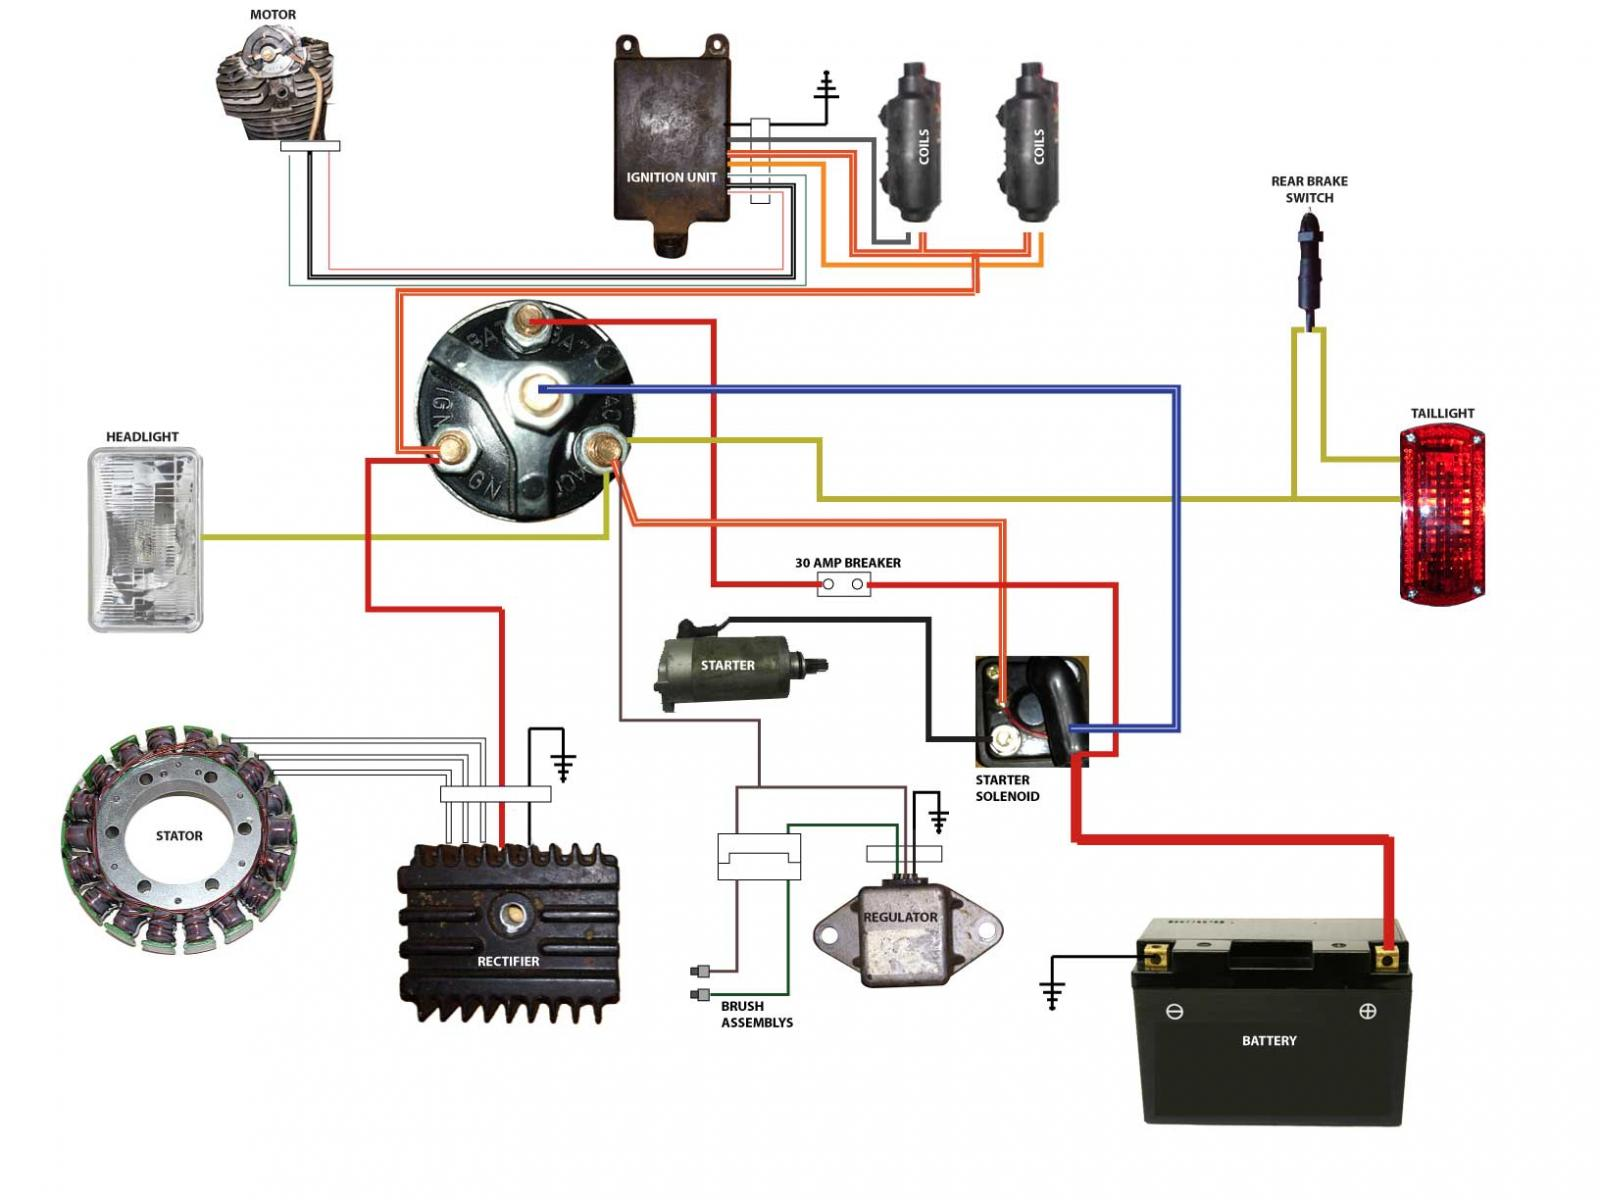 hight resolution of yamaha xs400 wiring diagrams page 8 yamaha xs400 forum at highcare asia